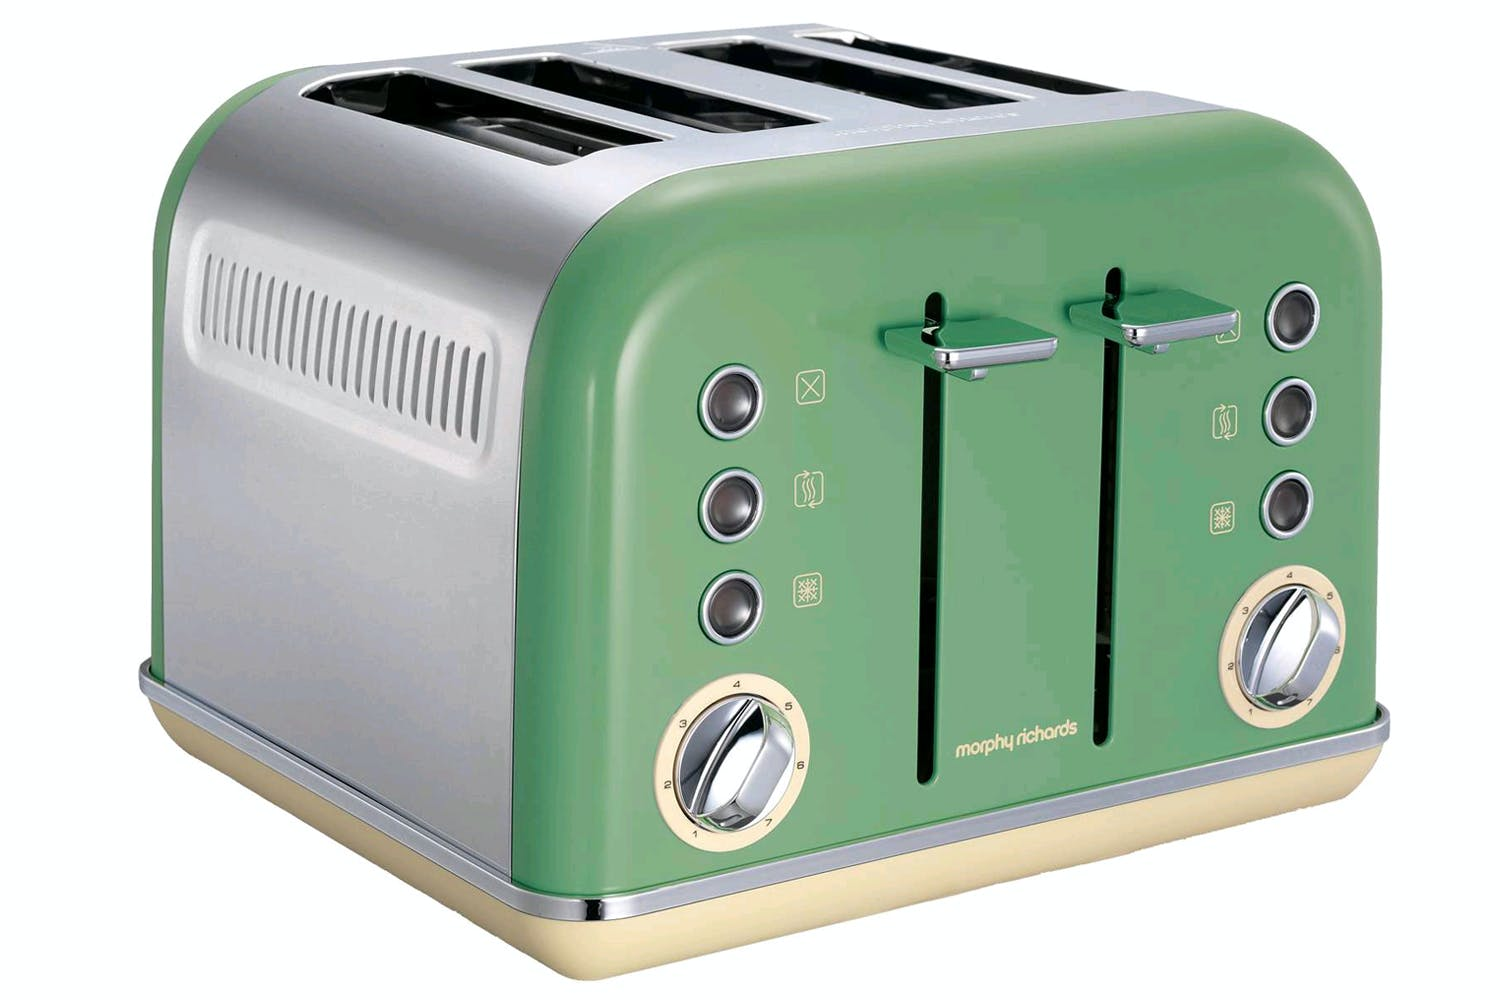 Morphy Richards 4 Slice Retro Accents Toaster | 242006 | Green